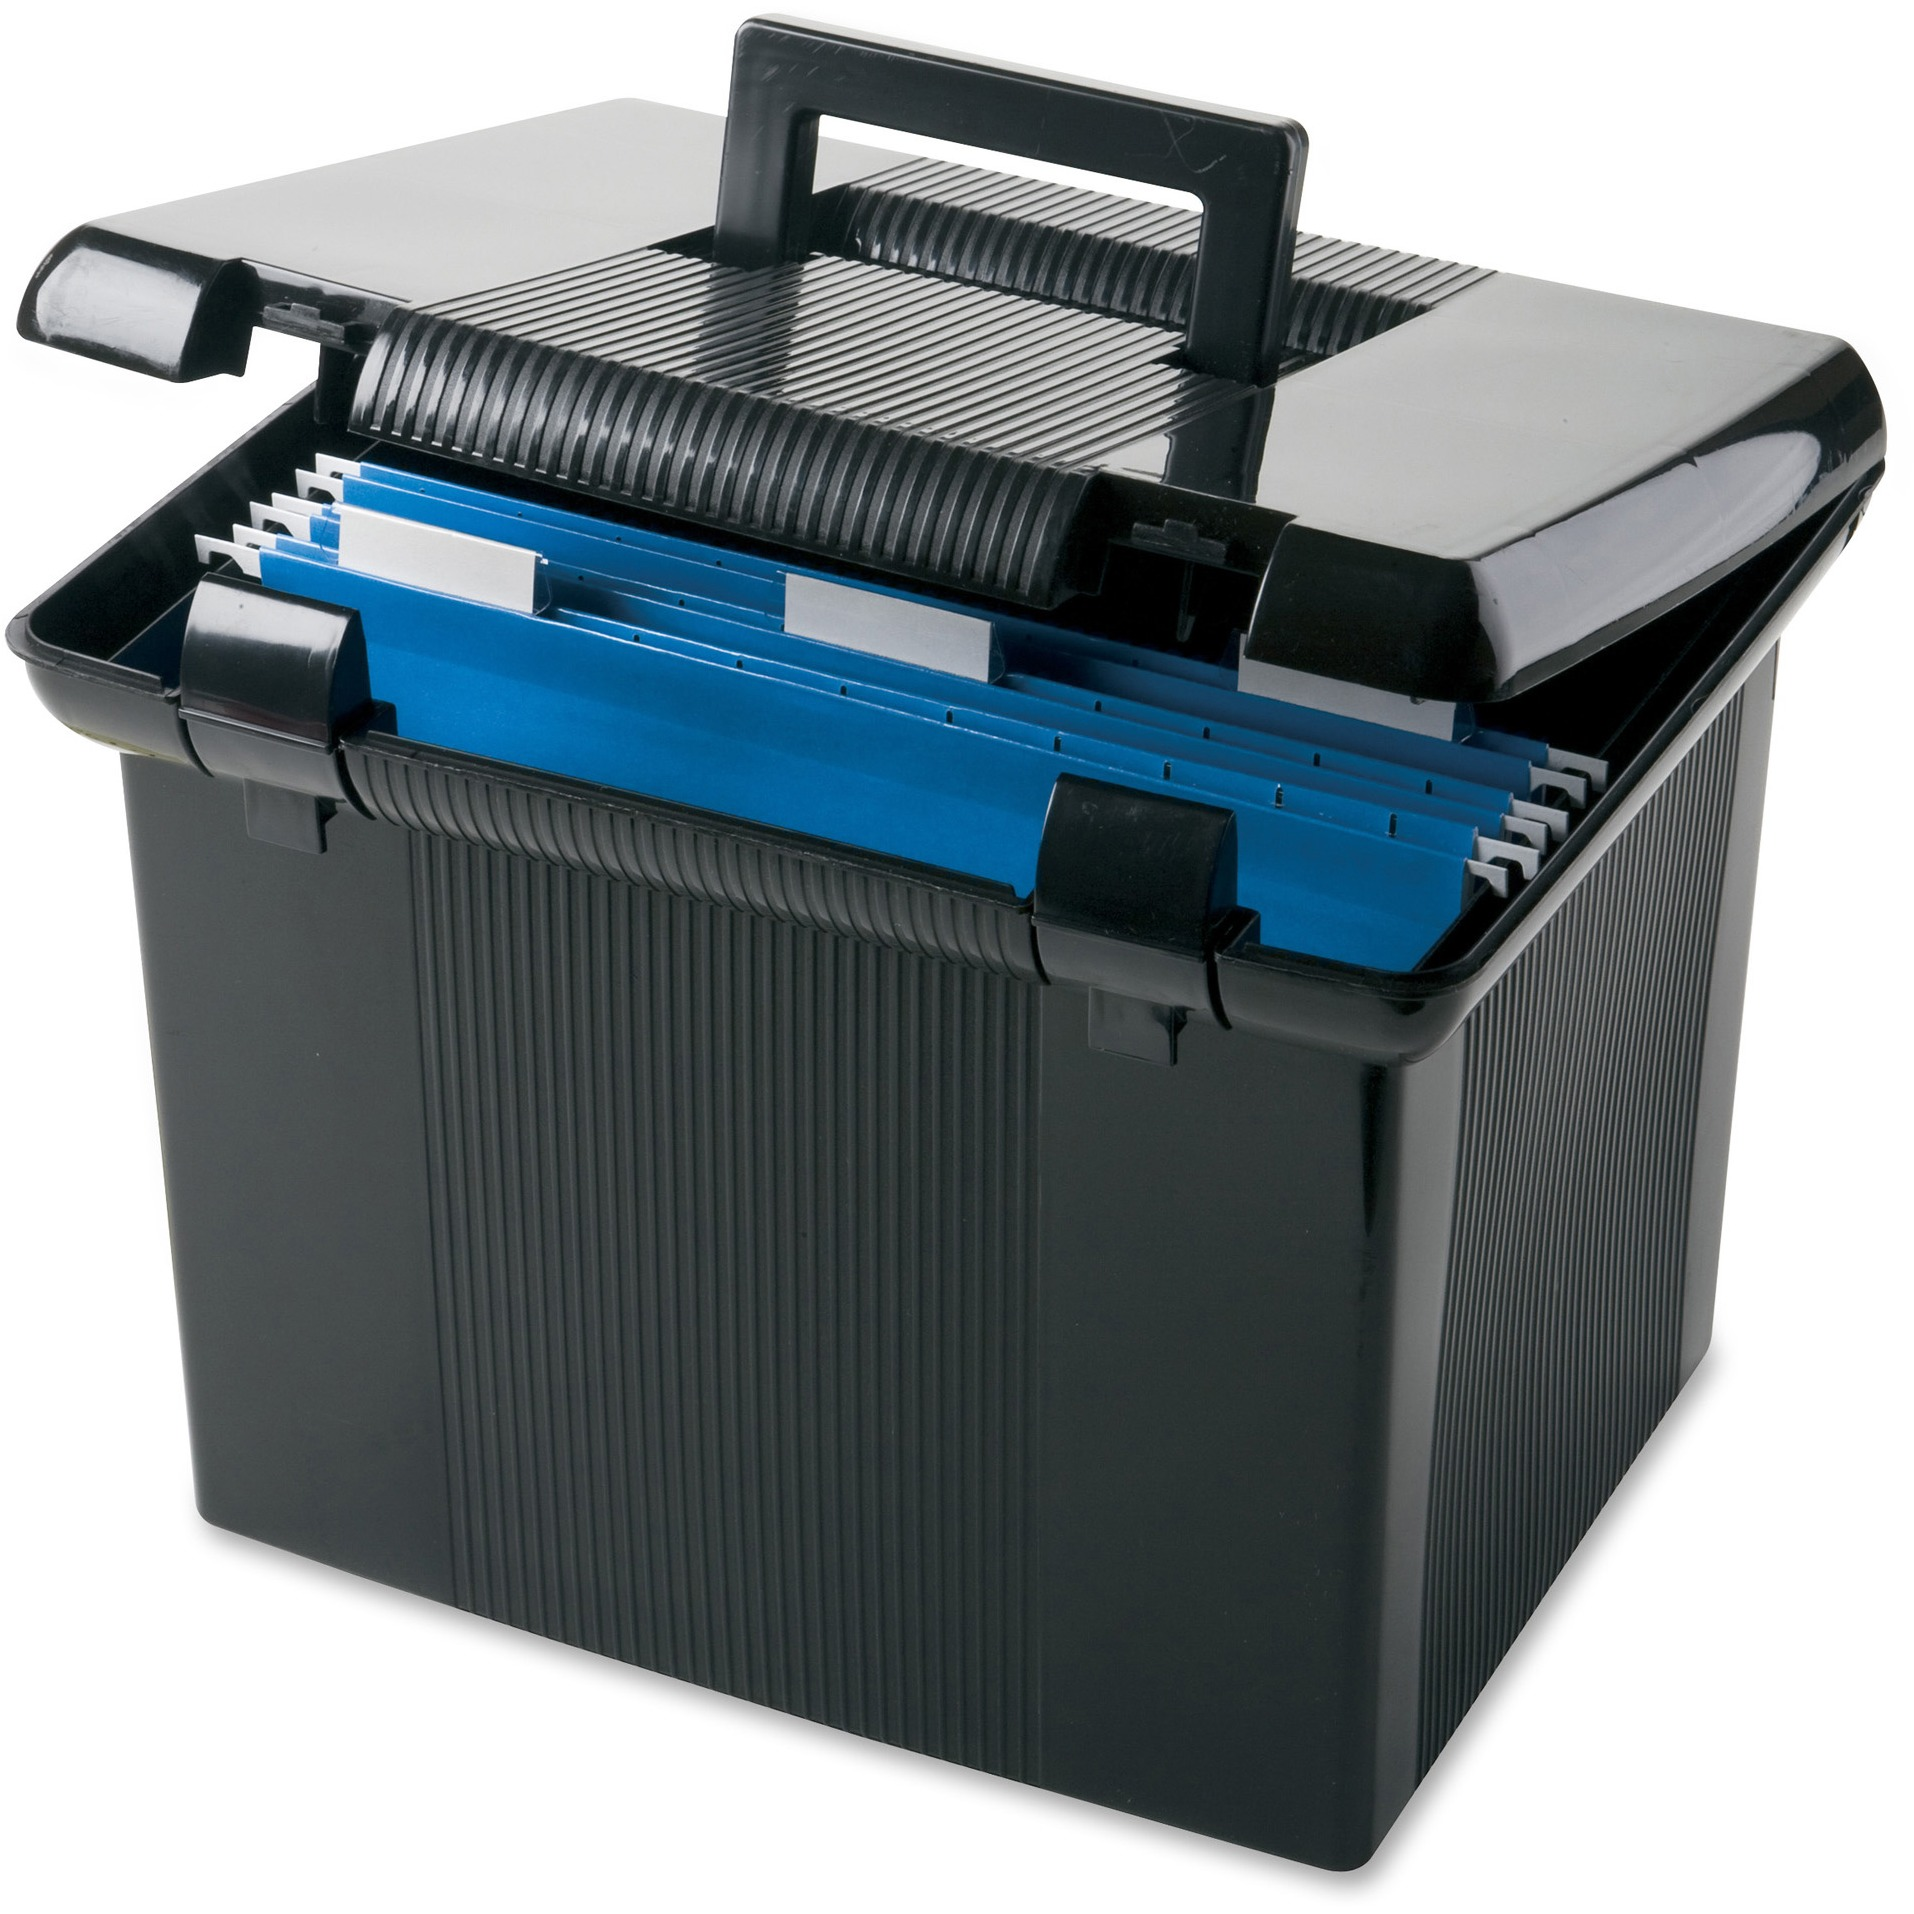 Pendaflex, PFX41742, Portafile File Storage Box, 1 Each, Black